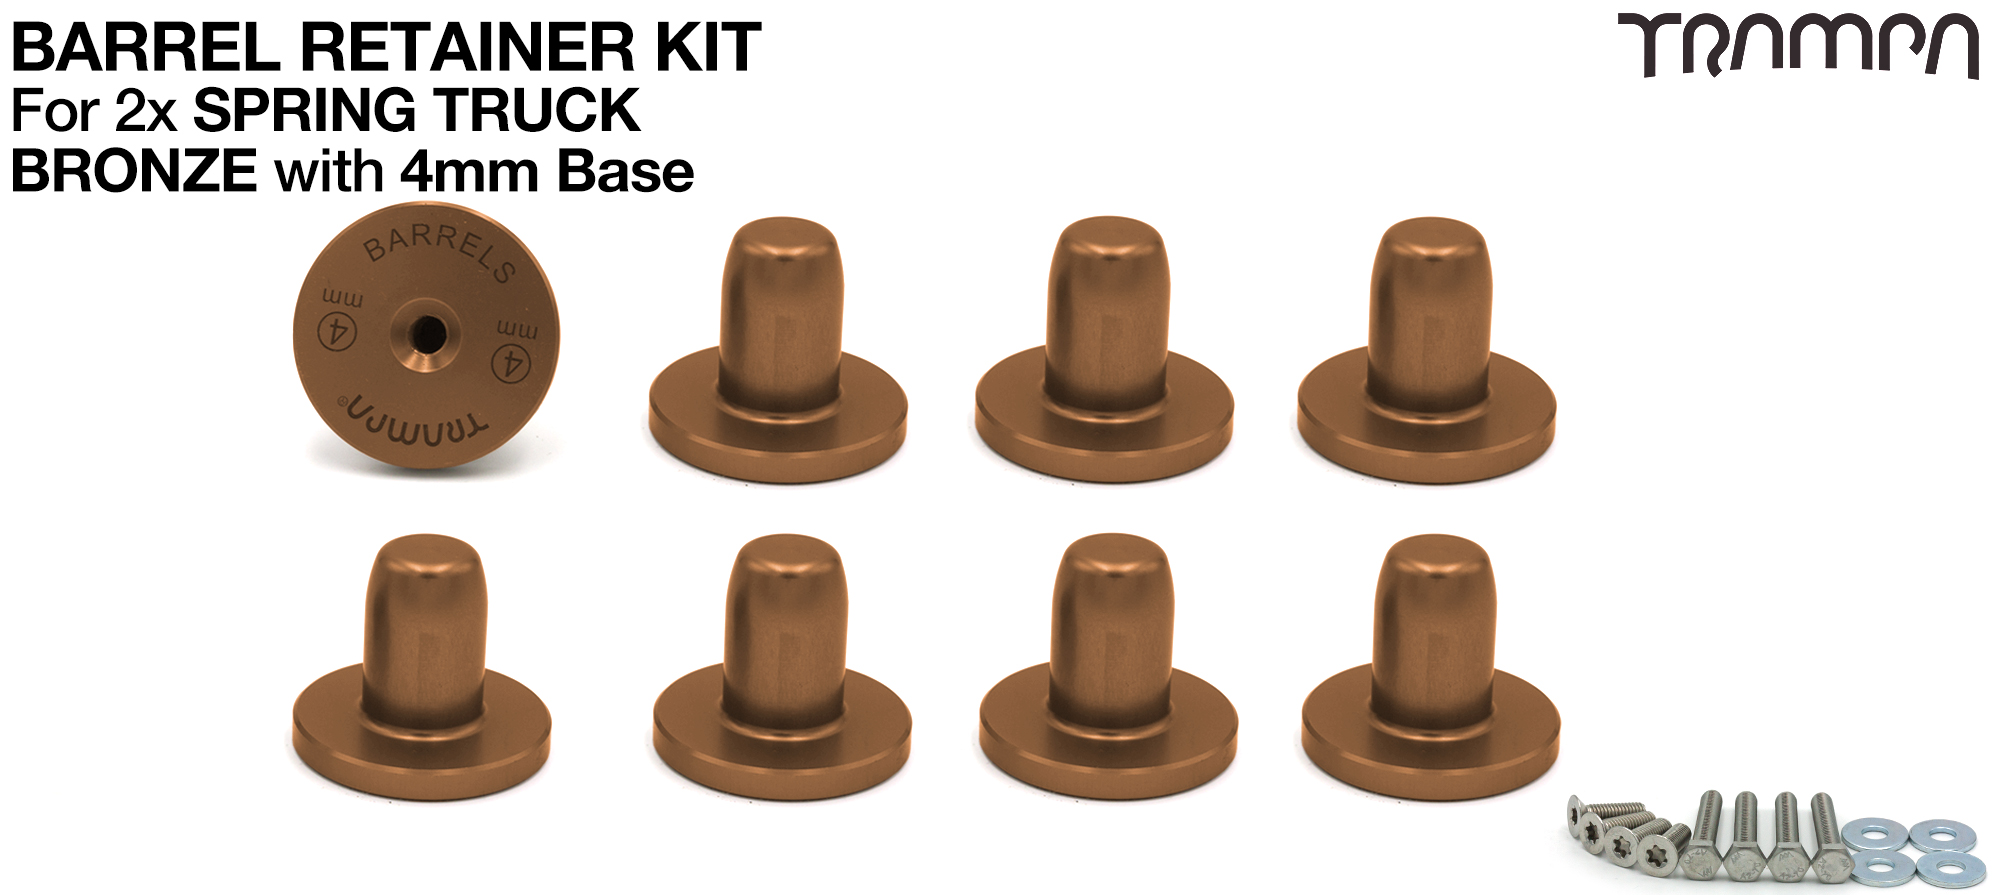 BRONZE Barrel Retainers x8 with 4mm Base